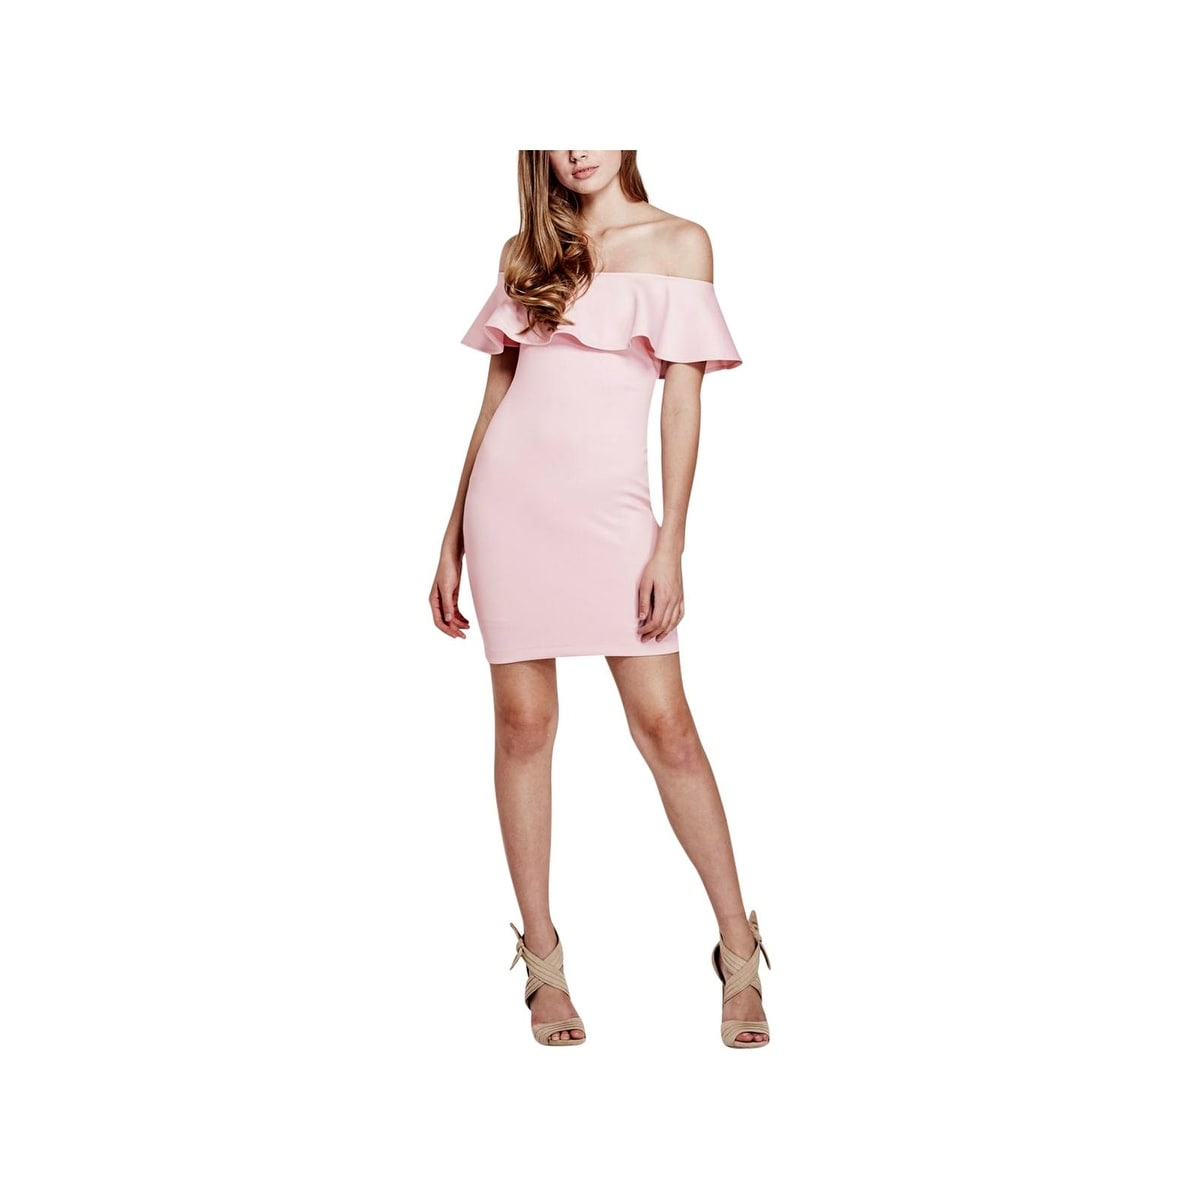 Clothing Overstock Great Guess At Deals Shopping Women's DressesFind vmON0y8nw